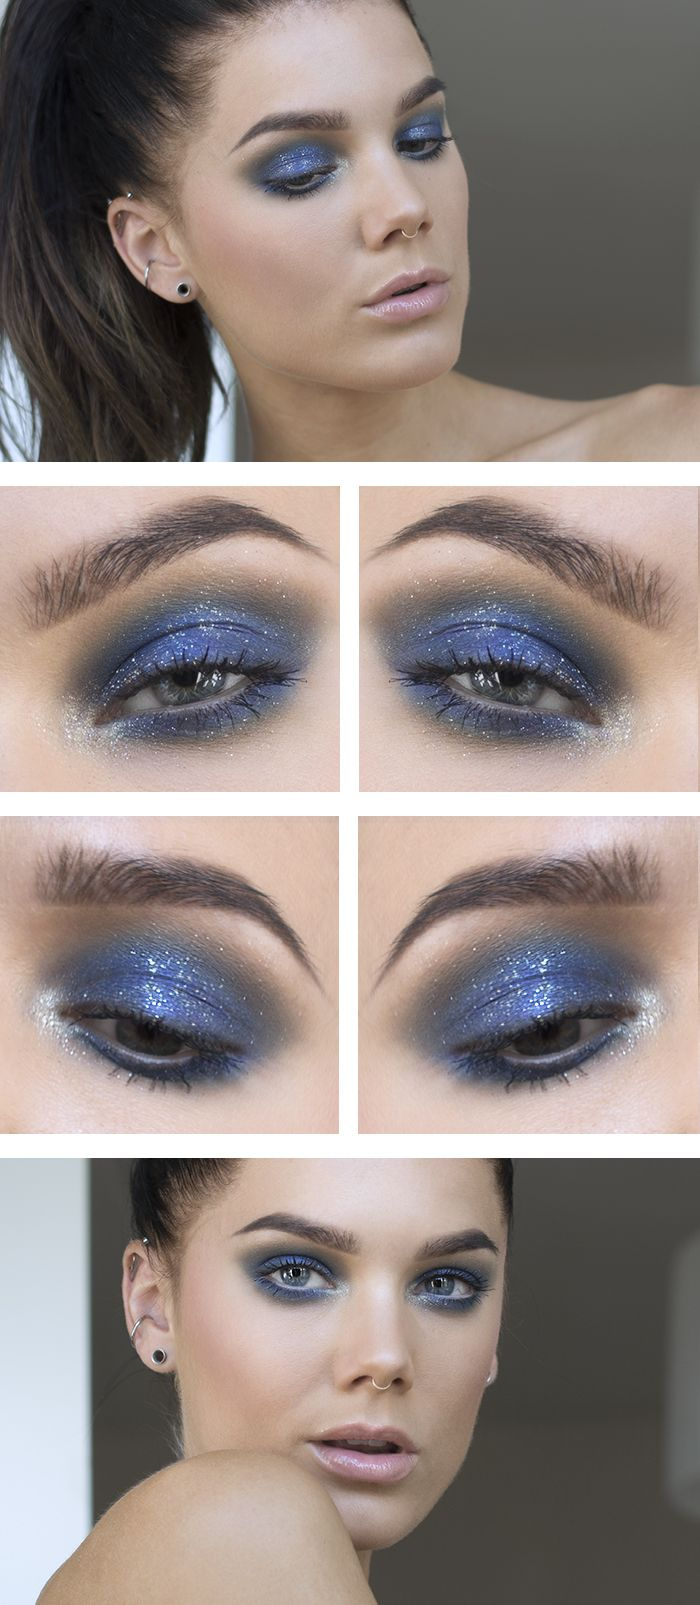 Todays look – Stars in the sky